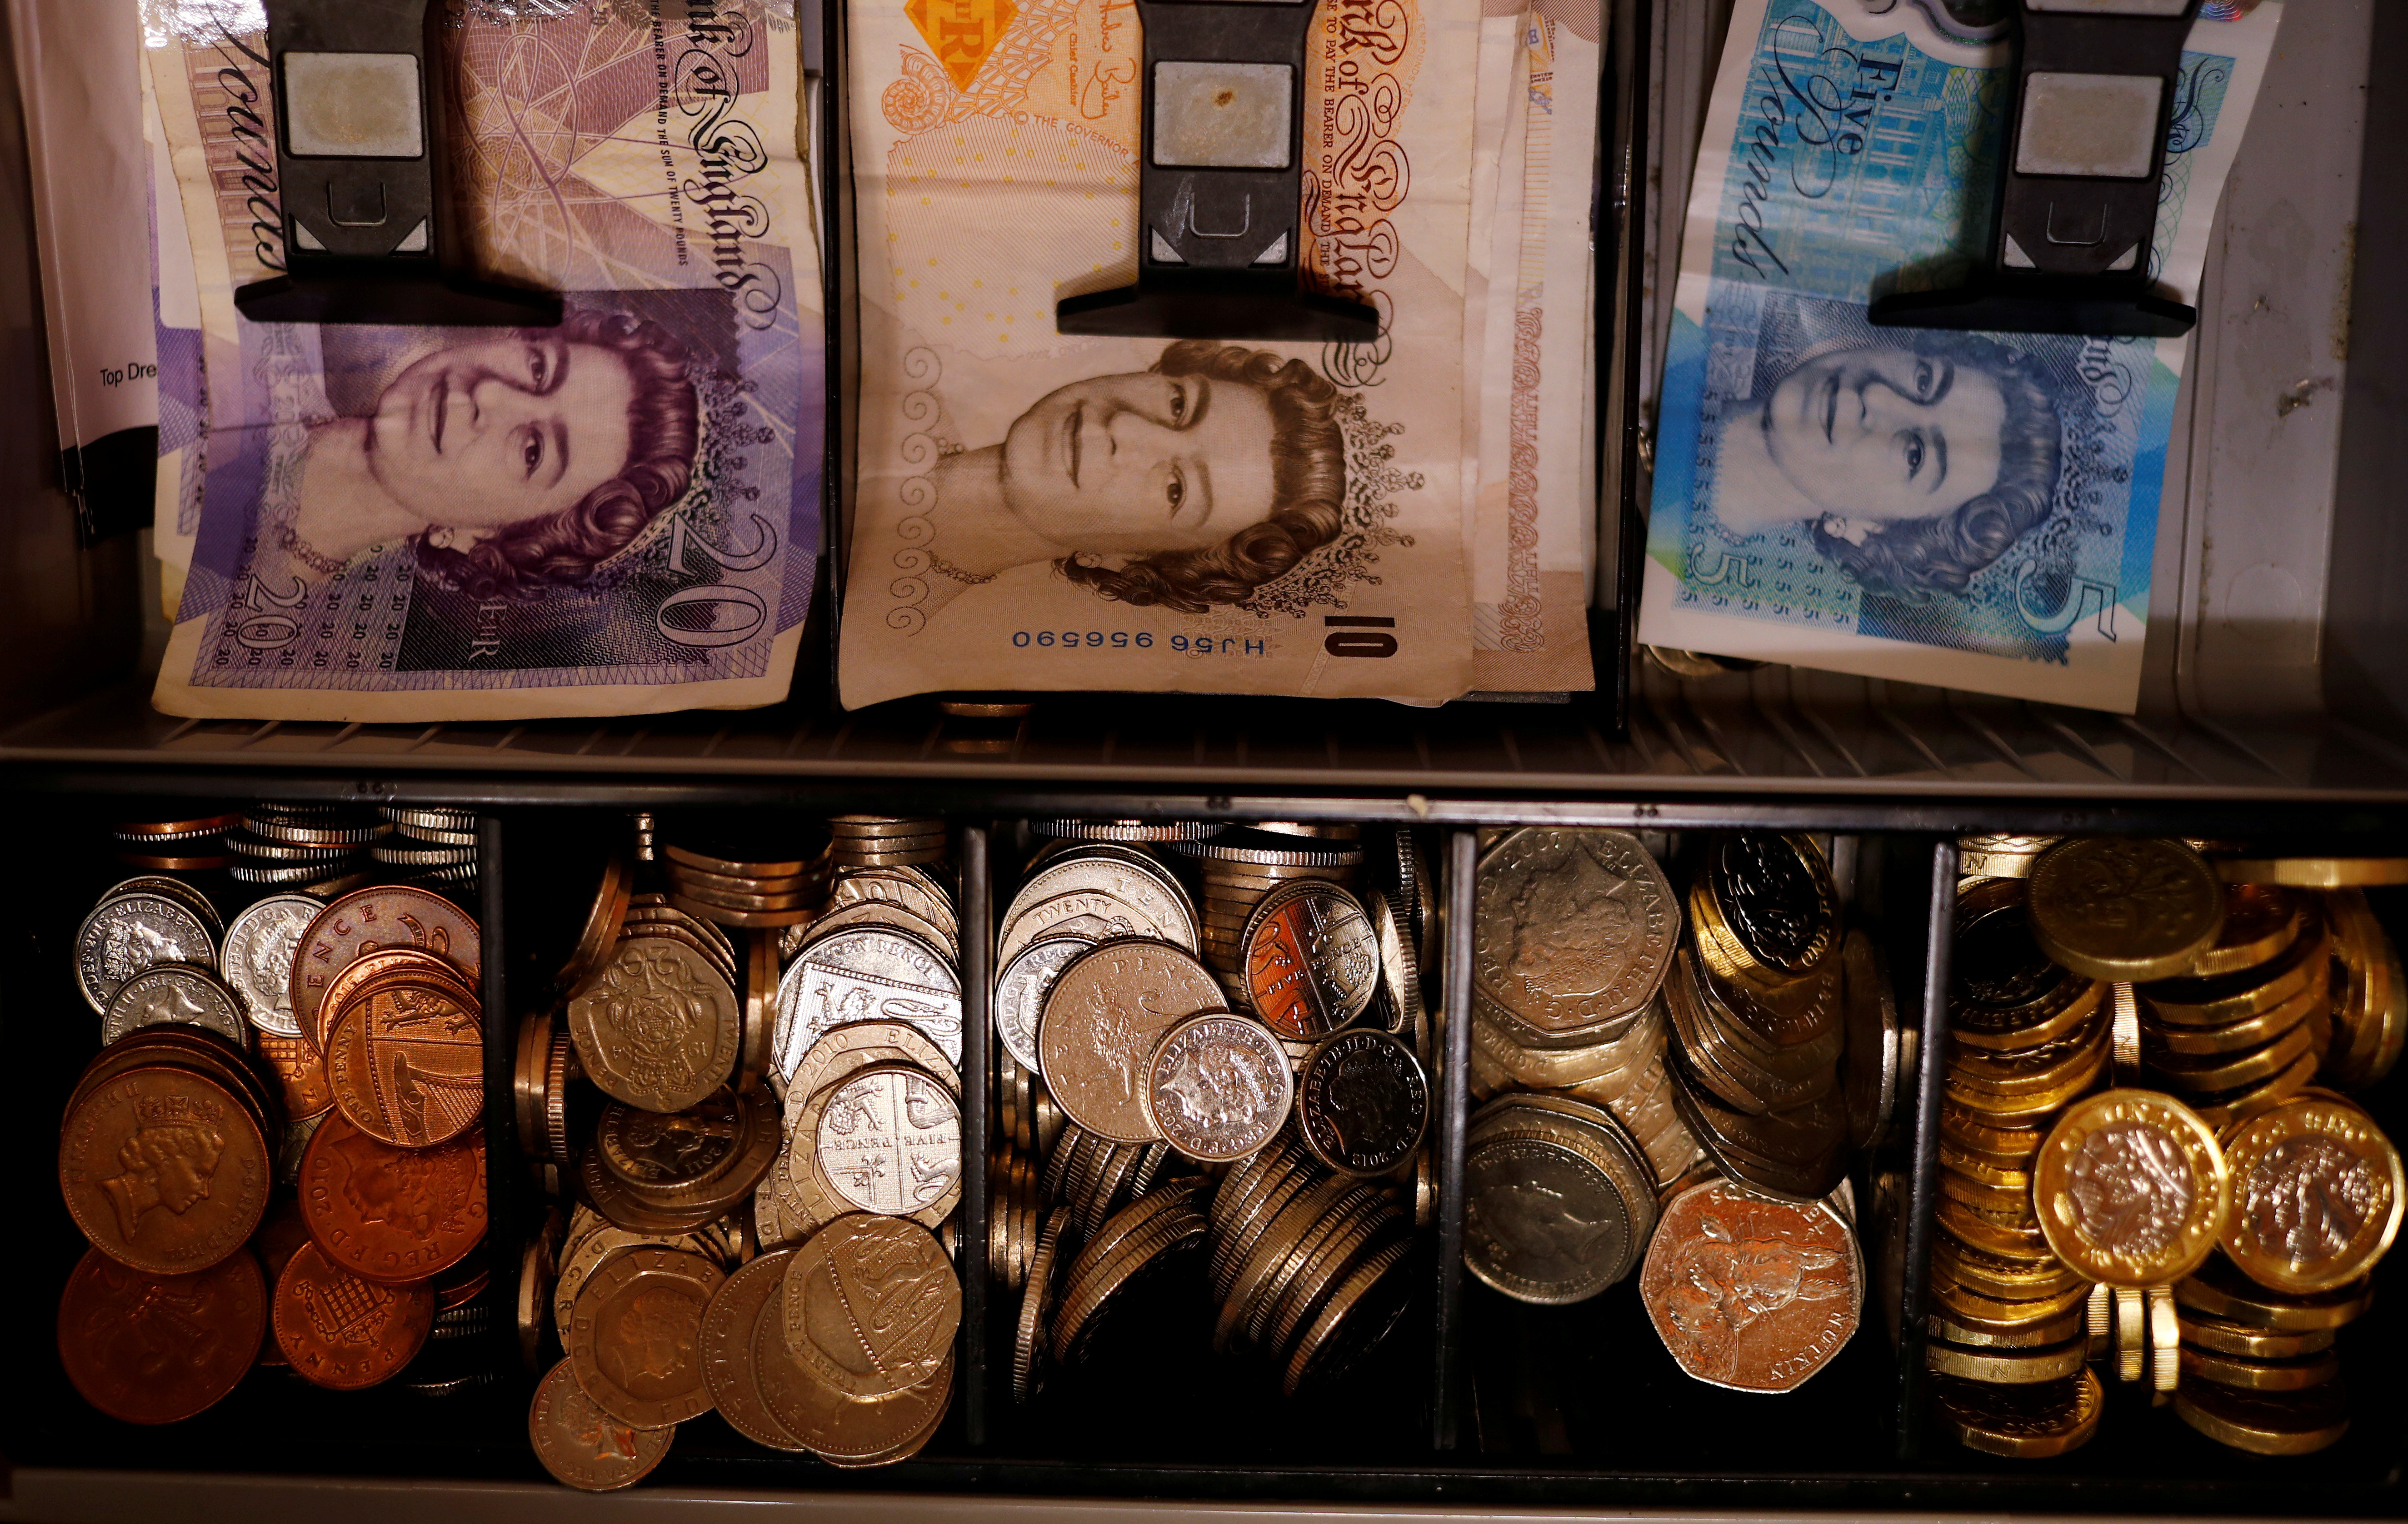 Pound notes and coins are seen inside a cash register in a bar in Manchester, Britain September 6, 2017. REUTERS/Phil Noble//File Photo